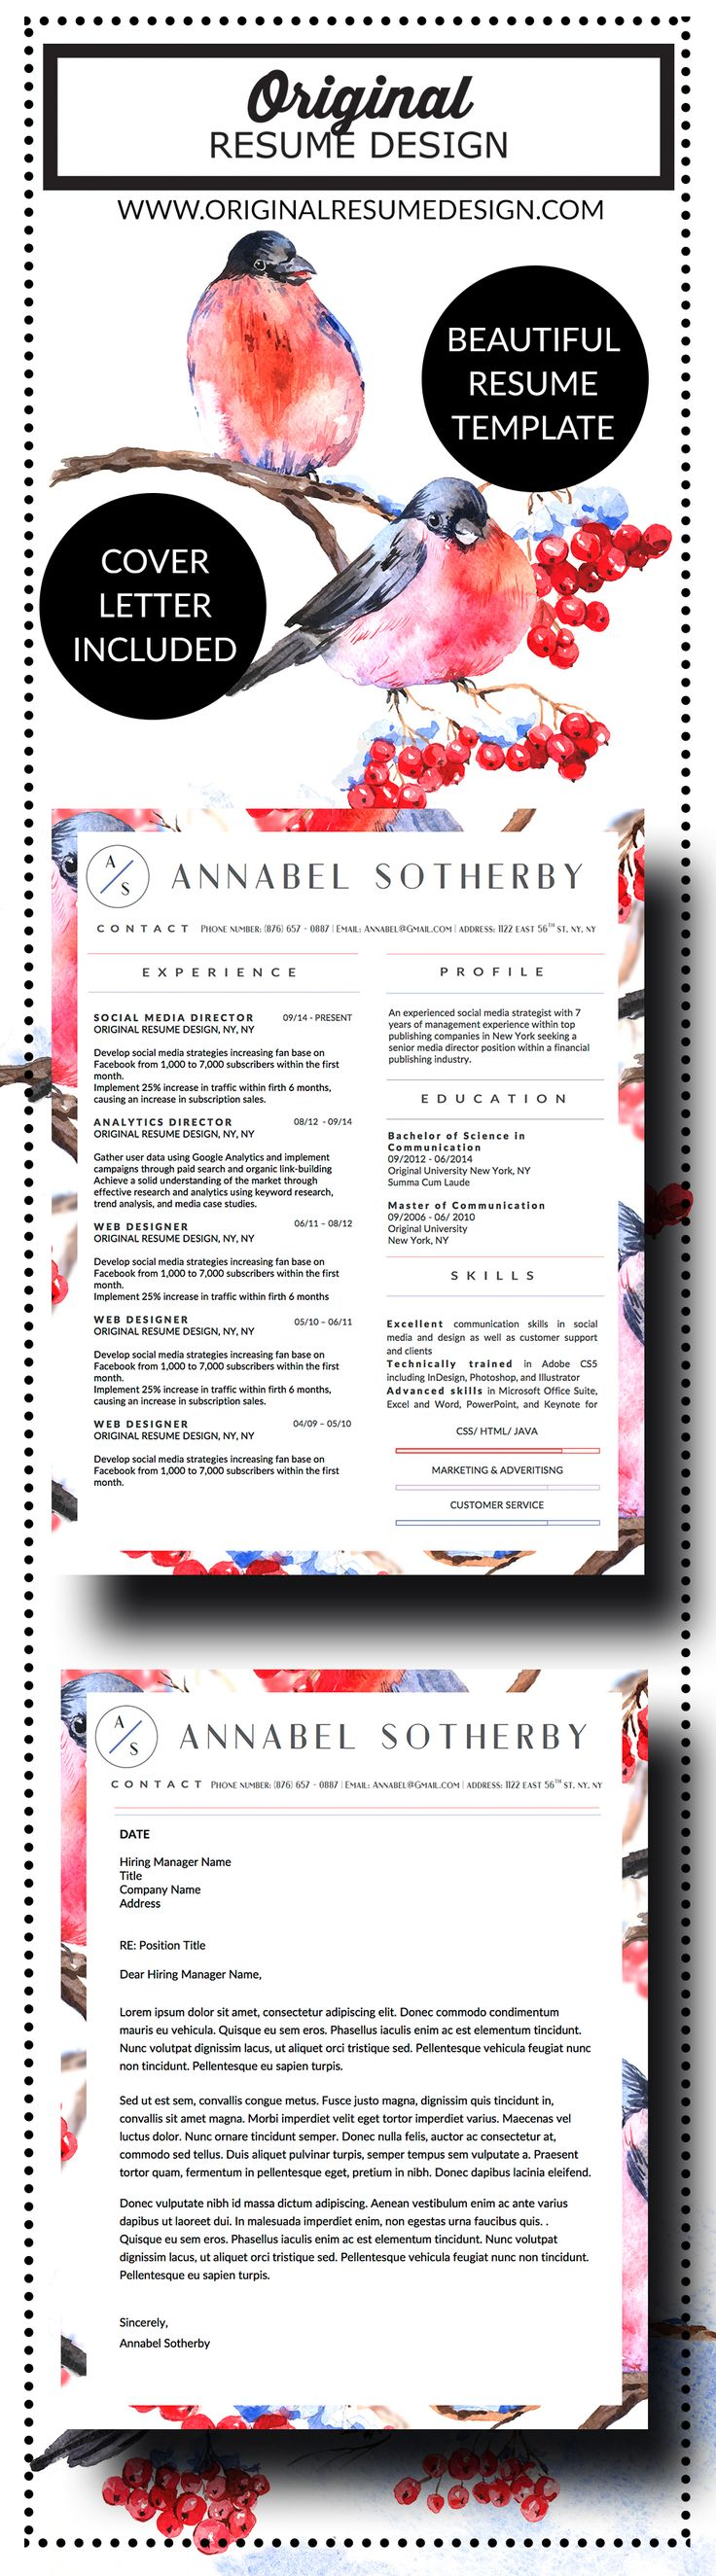 132 Best Resumes That Pop! Images On Pinterest | Graph Design